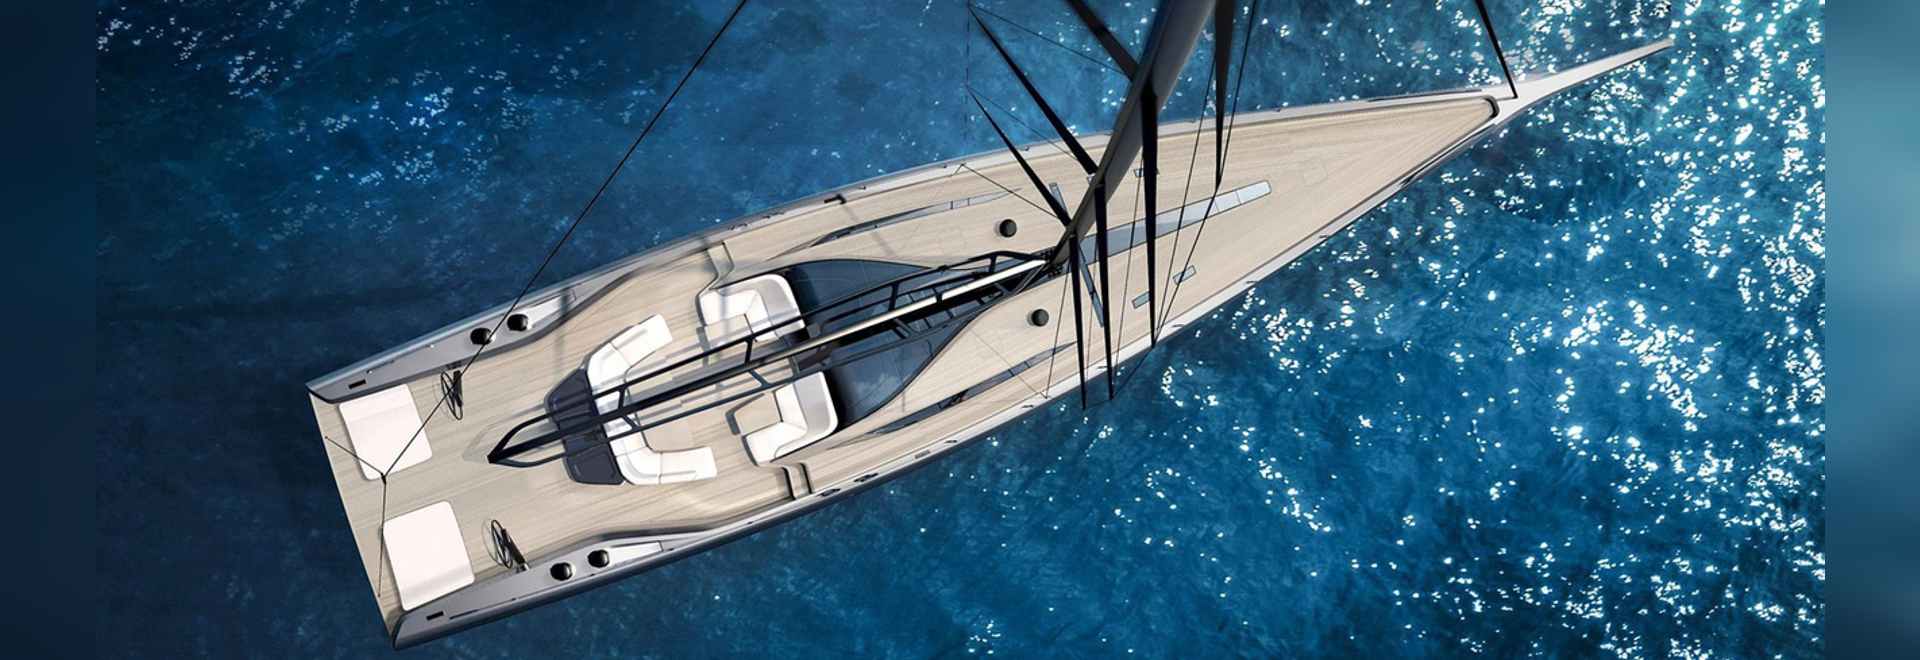 Wally Yachts svela 30,8 metri di Sloop a vela Wally 101